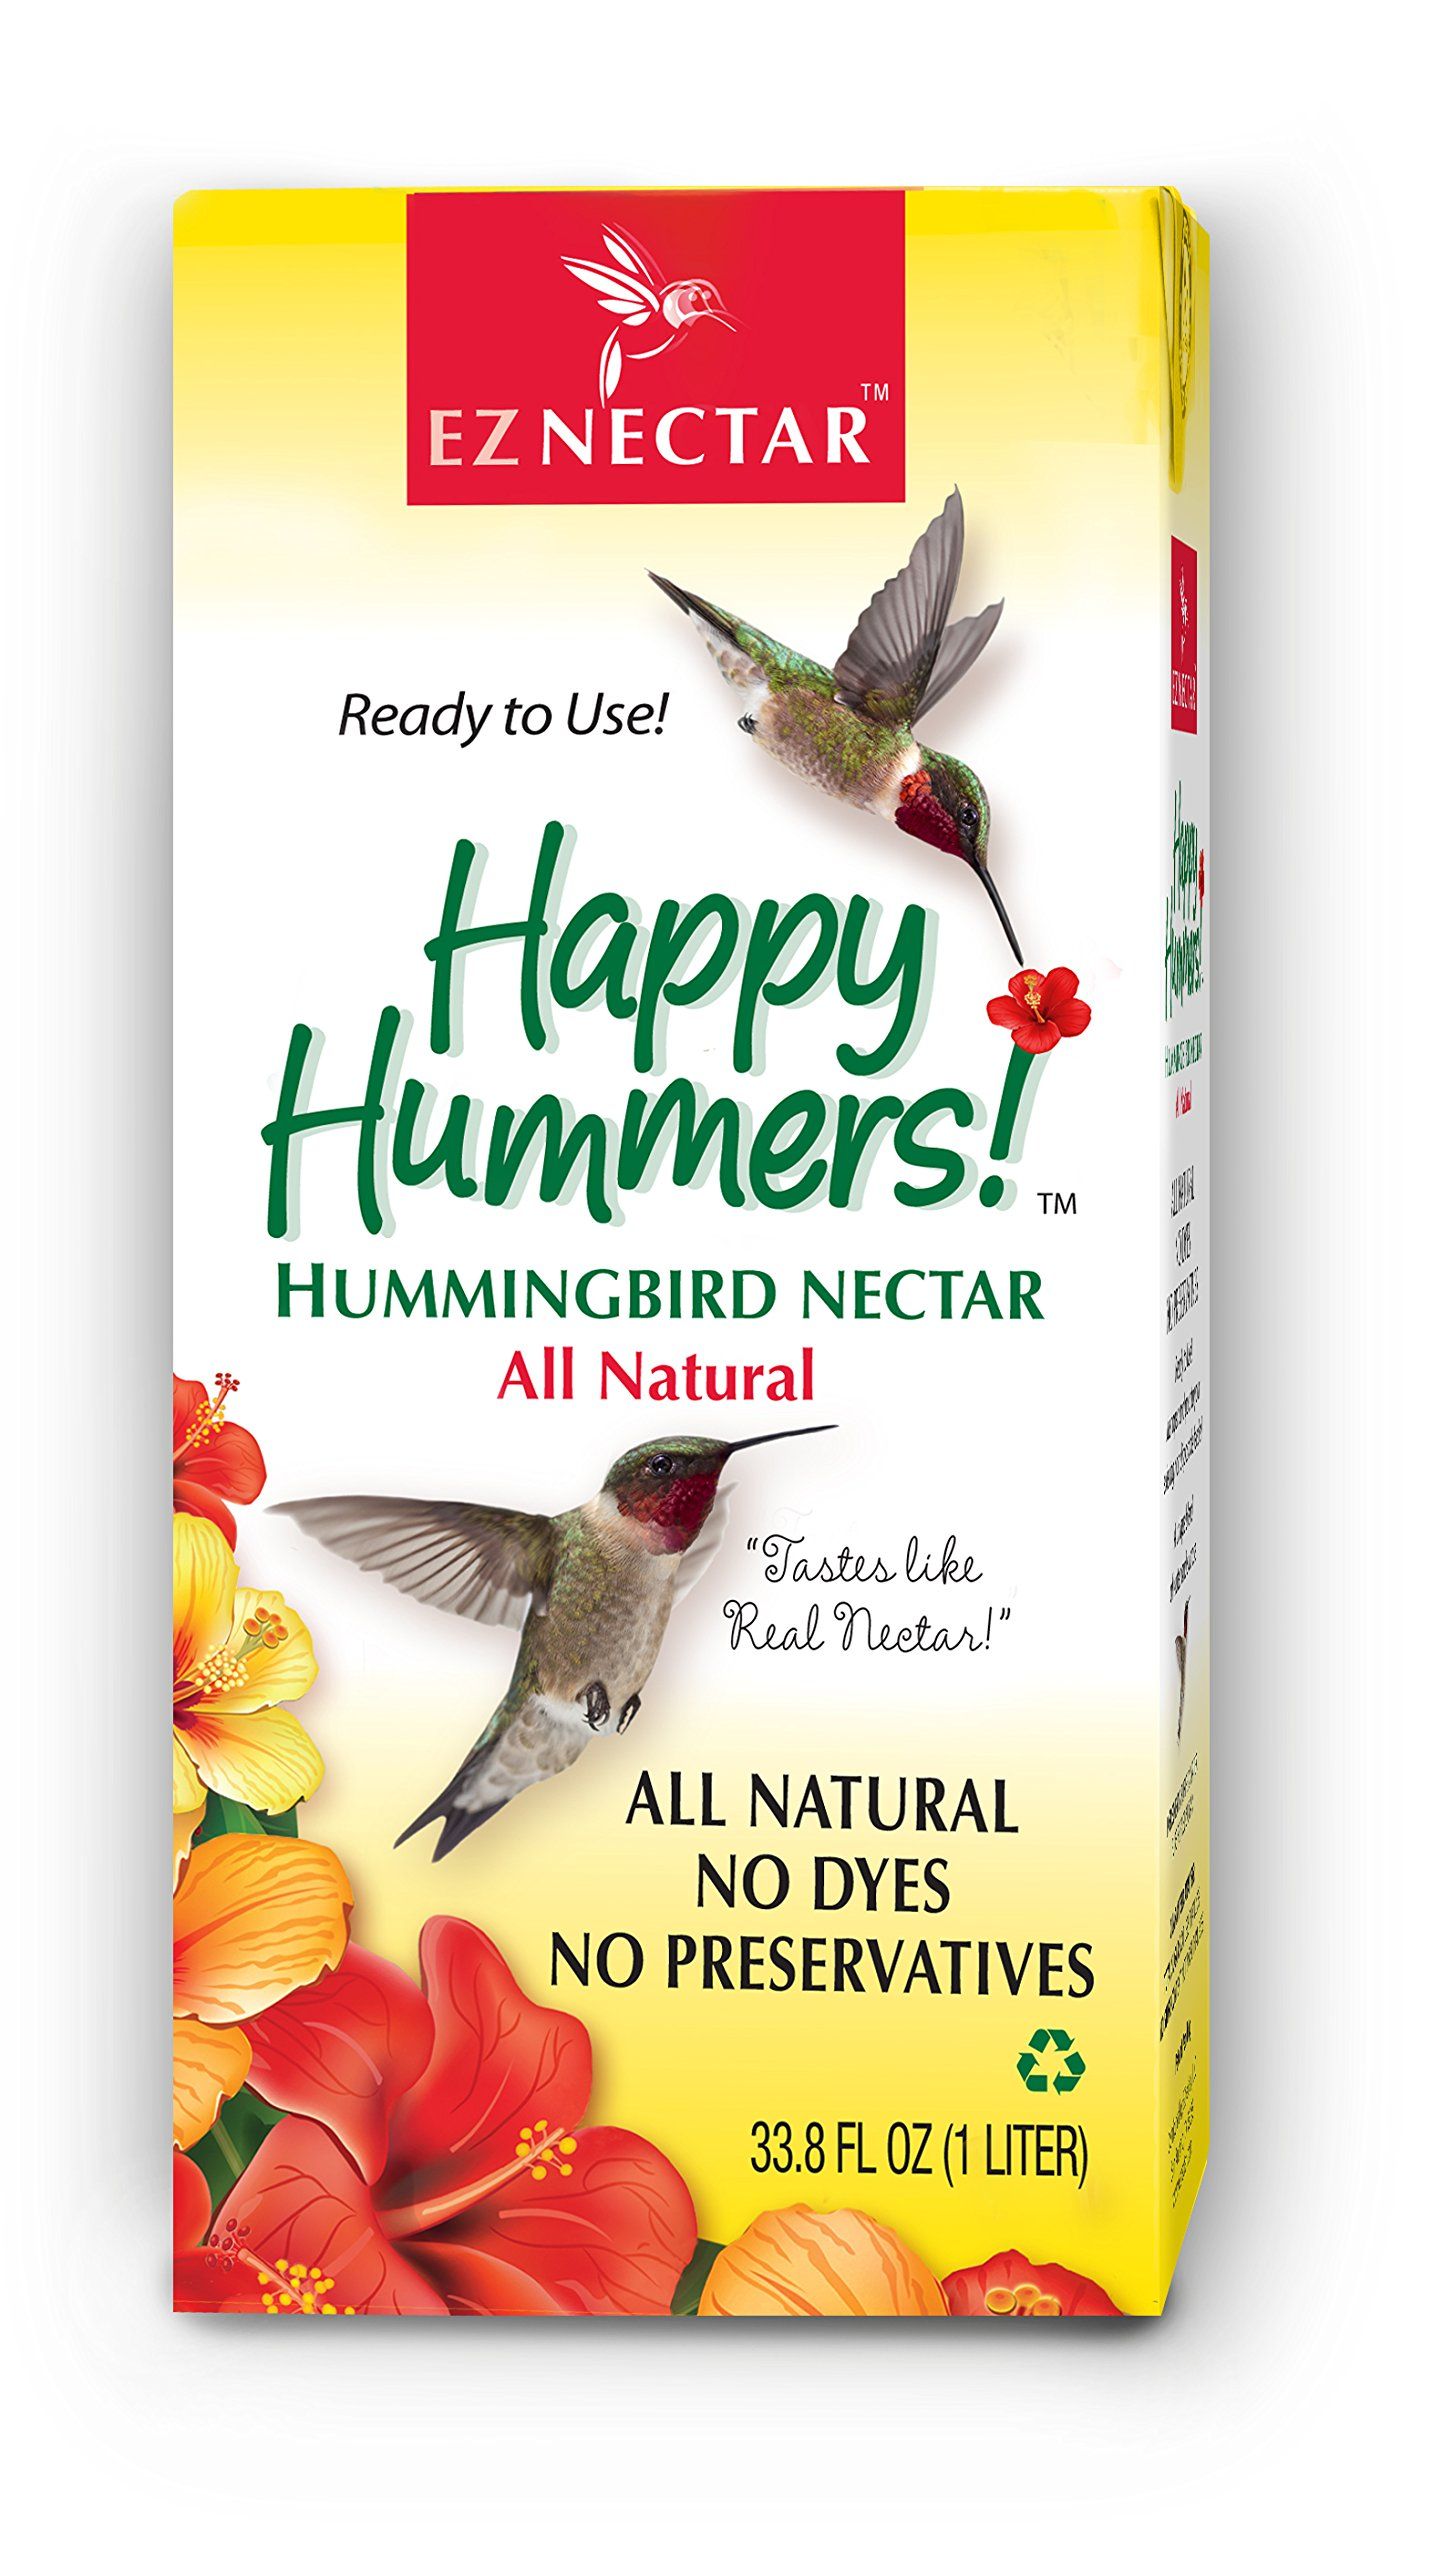 EZNectar - 33.8 oz The Only Ready-to-Use Hummingbird Nectar Exactly Like Flower Nectar. Patented, Preservative & Dye Free, Hummingbird Food - Nectar (1 Piece)